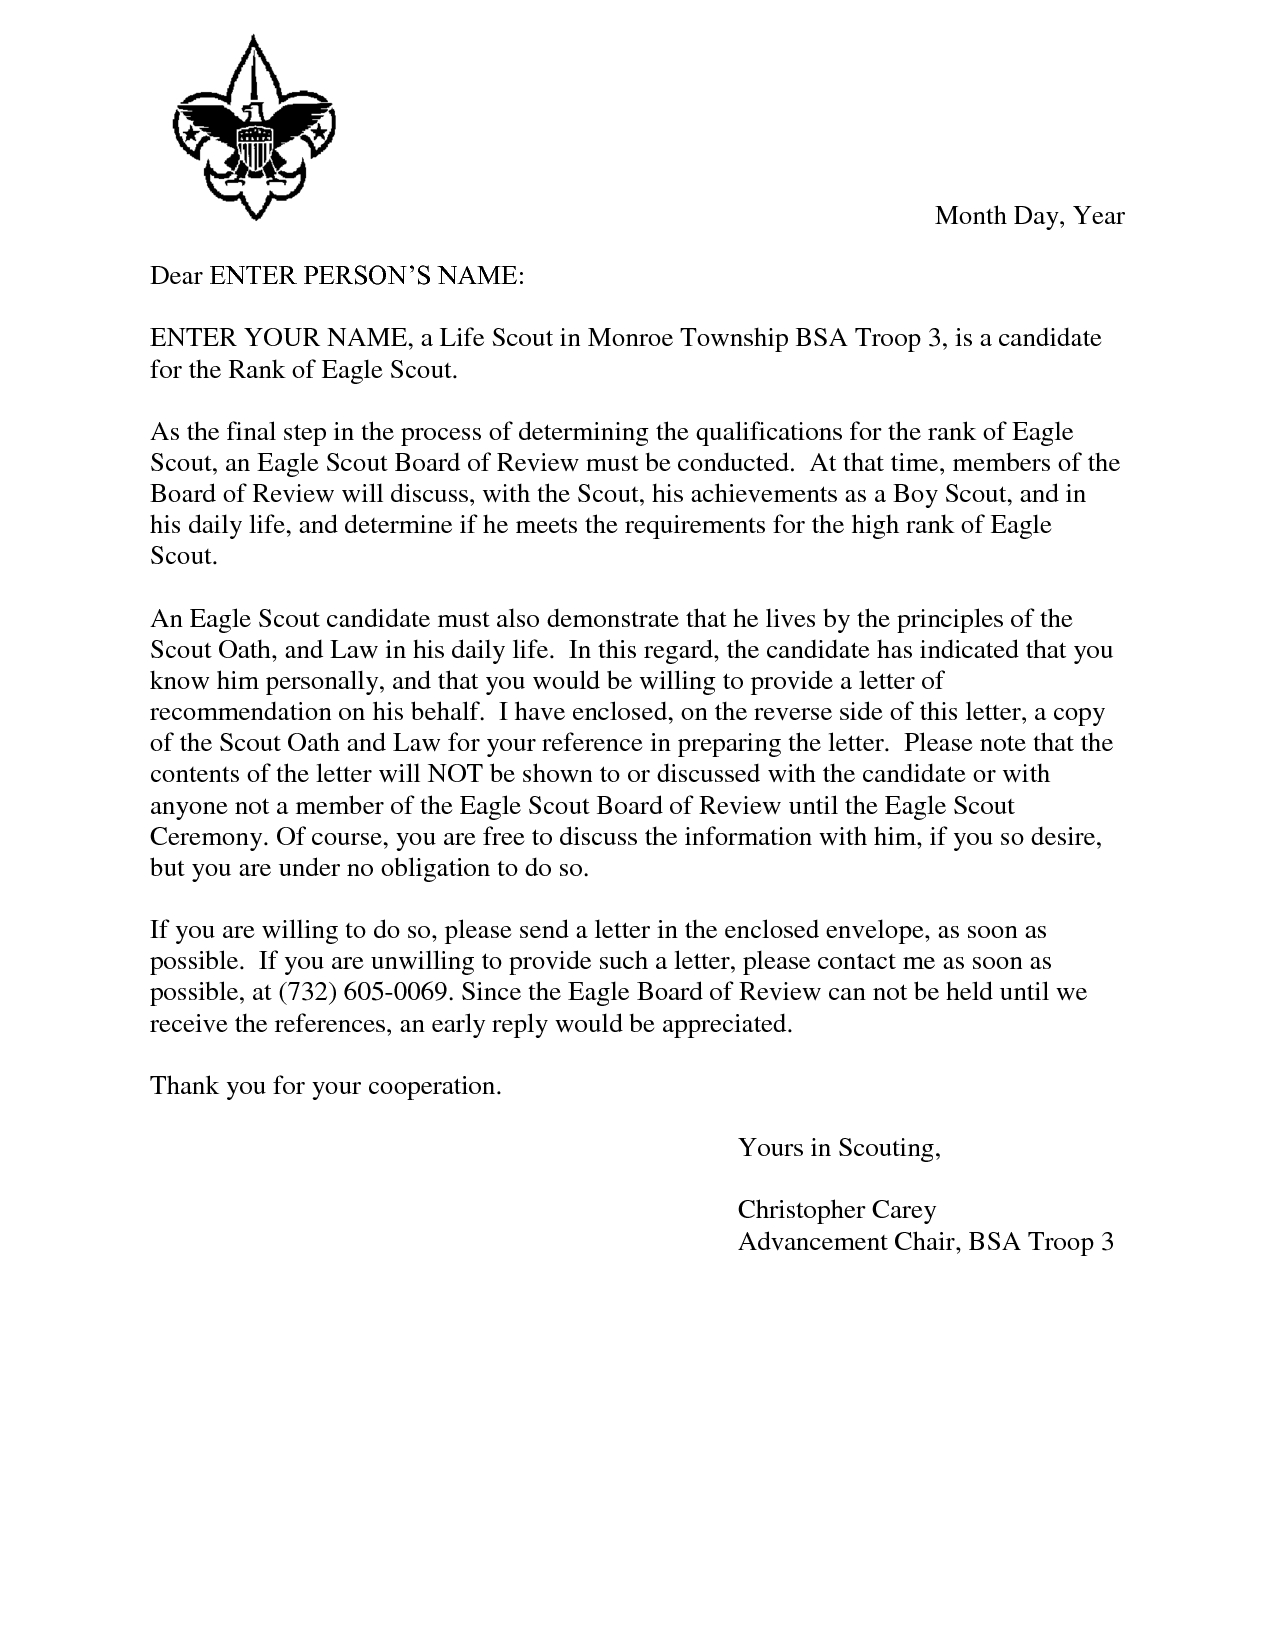 boy scout donation letter template Collection-Eagle Scout Reference Request Sample Letter DOC 7 by Hfr990Q TGQFAGp7 14-m